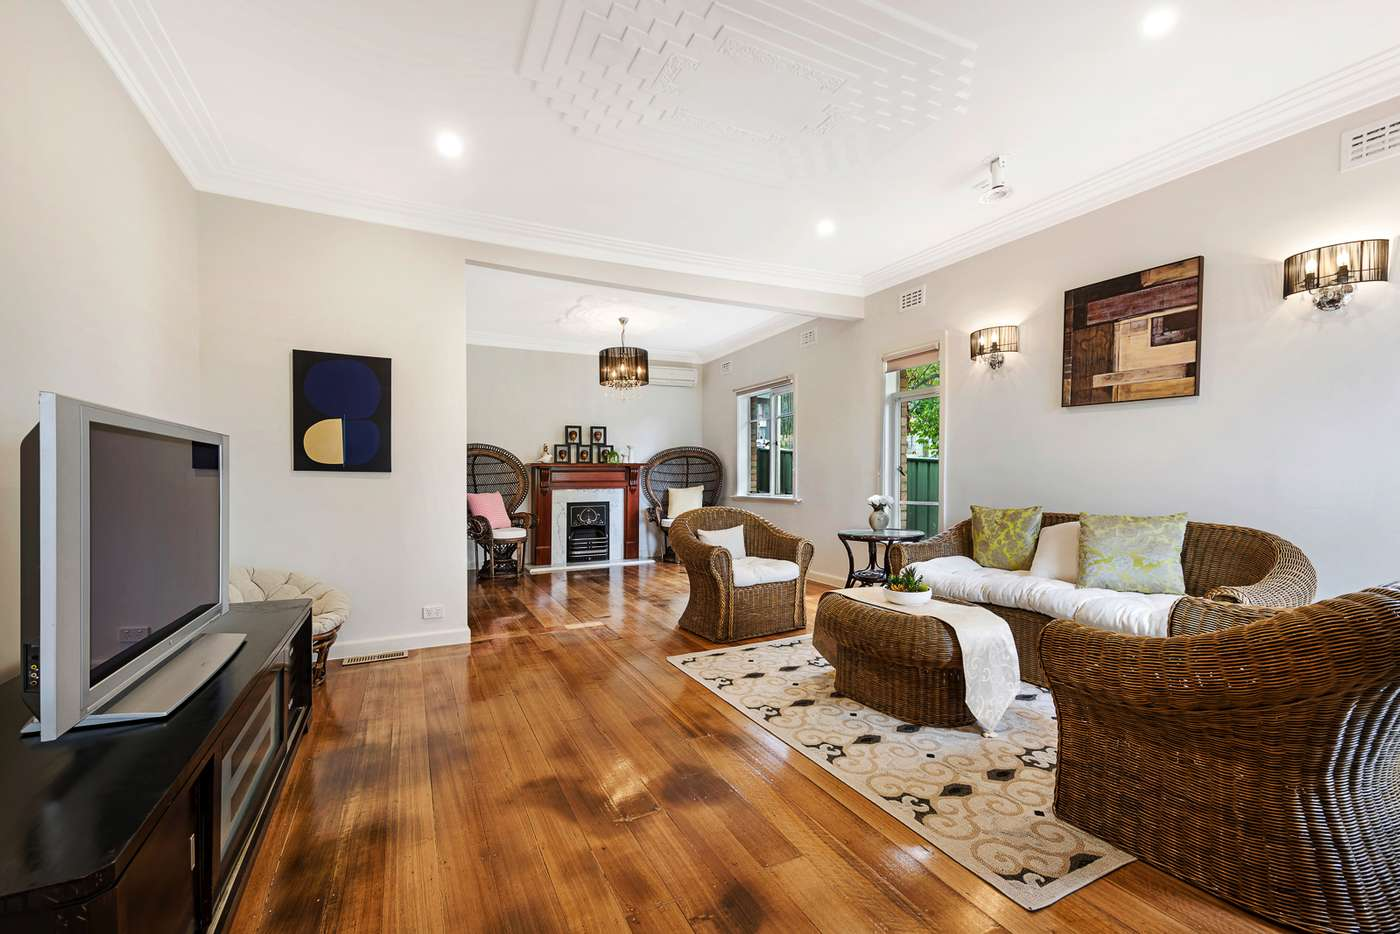 Main view of Homely house listing, 40 Coonans Rd, Pascoe Vale South VIC 3044